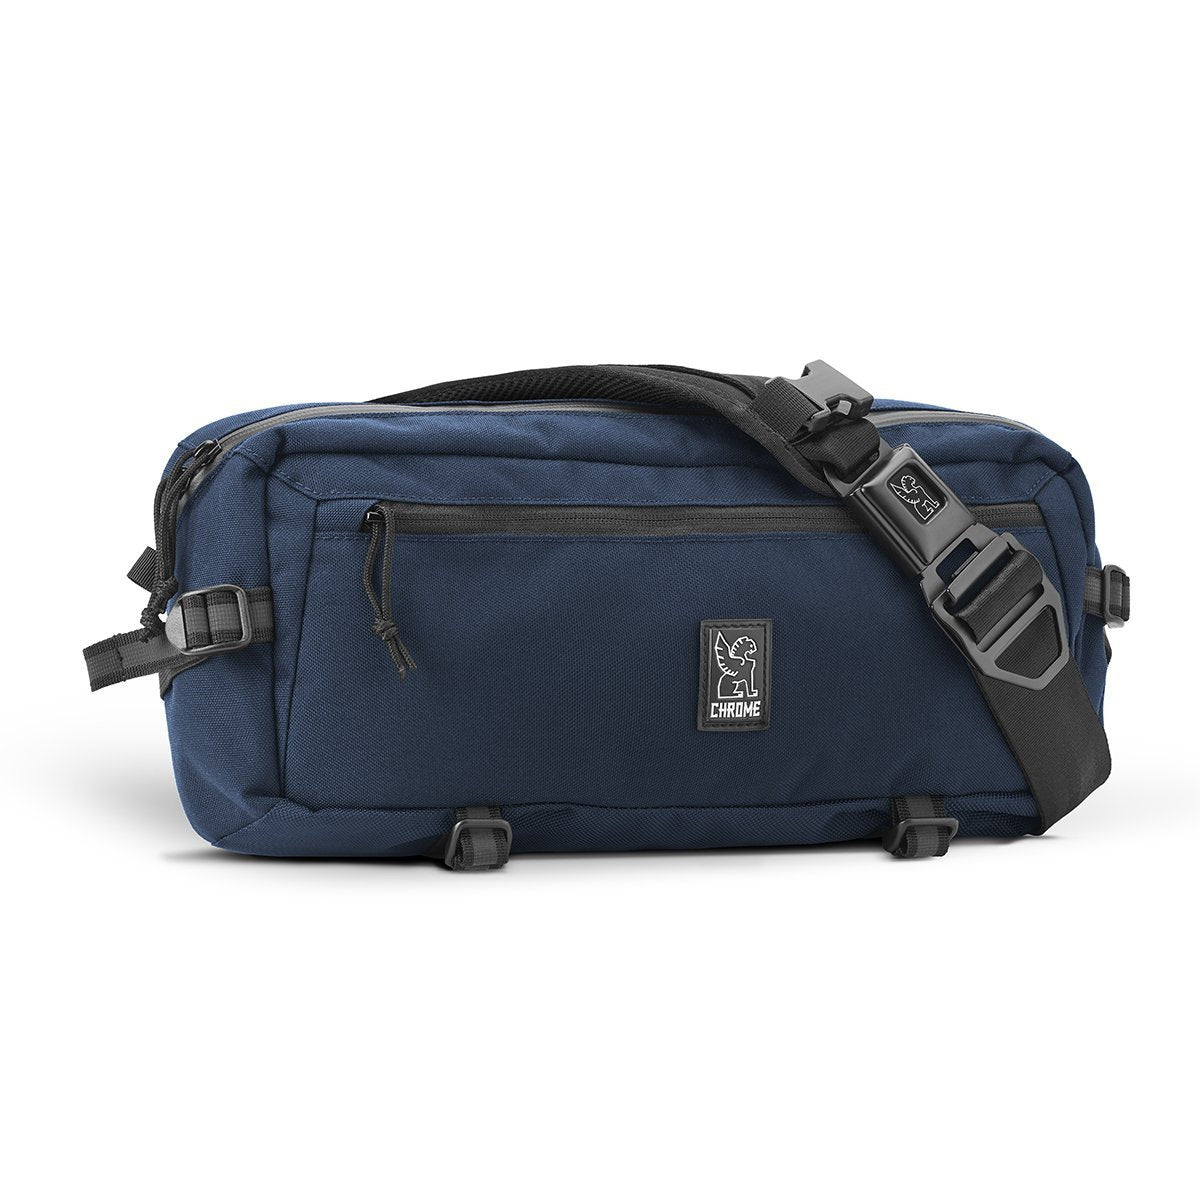 BG-196-NBAM, Chrome Industries, Kadet Nylon Sling Bag, Navy Aluminium, Sling Backpack